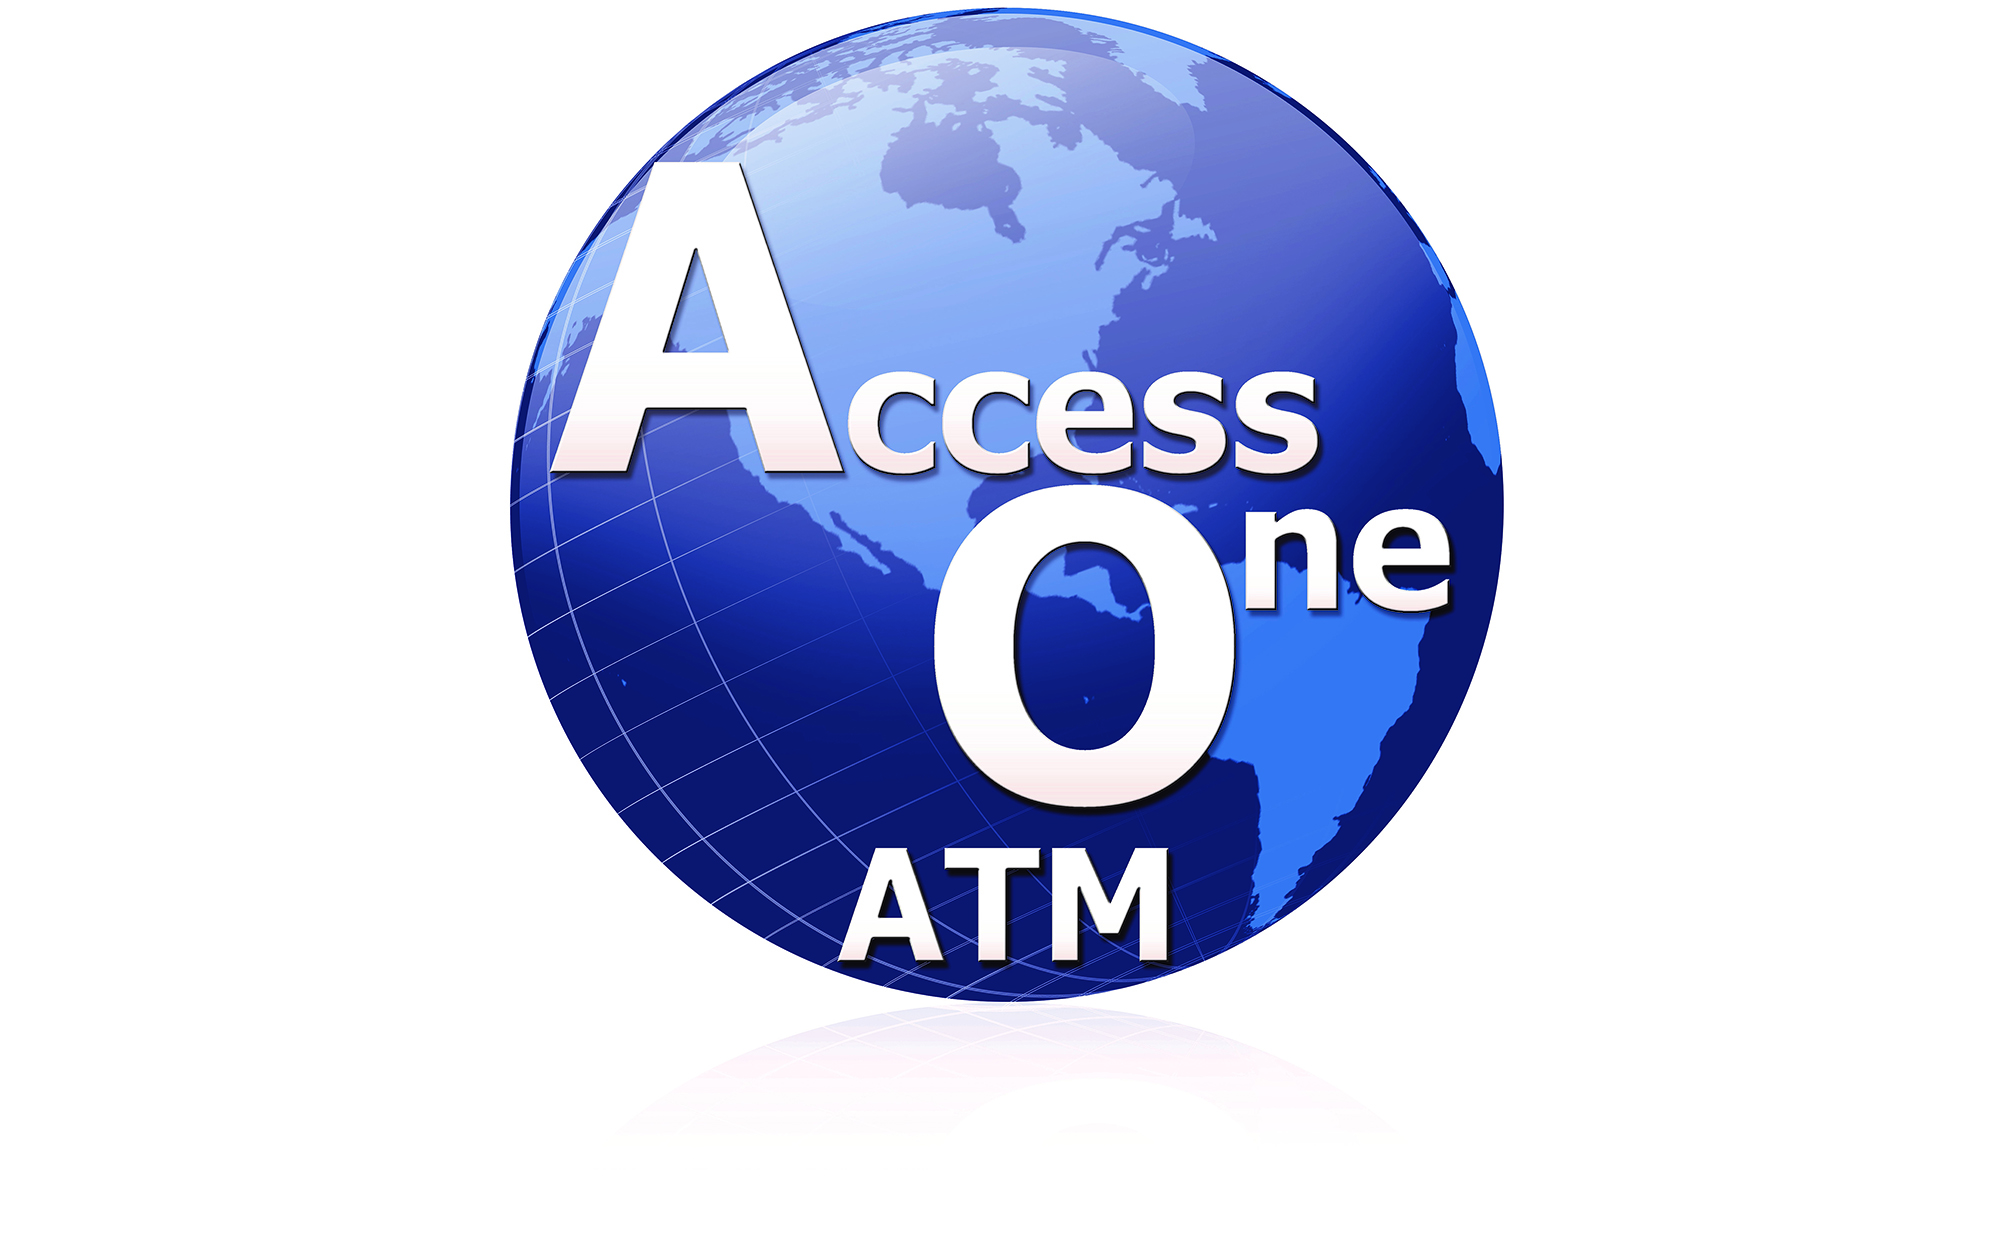 Access One ATM